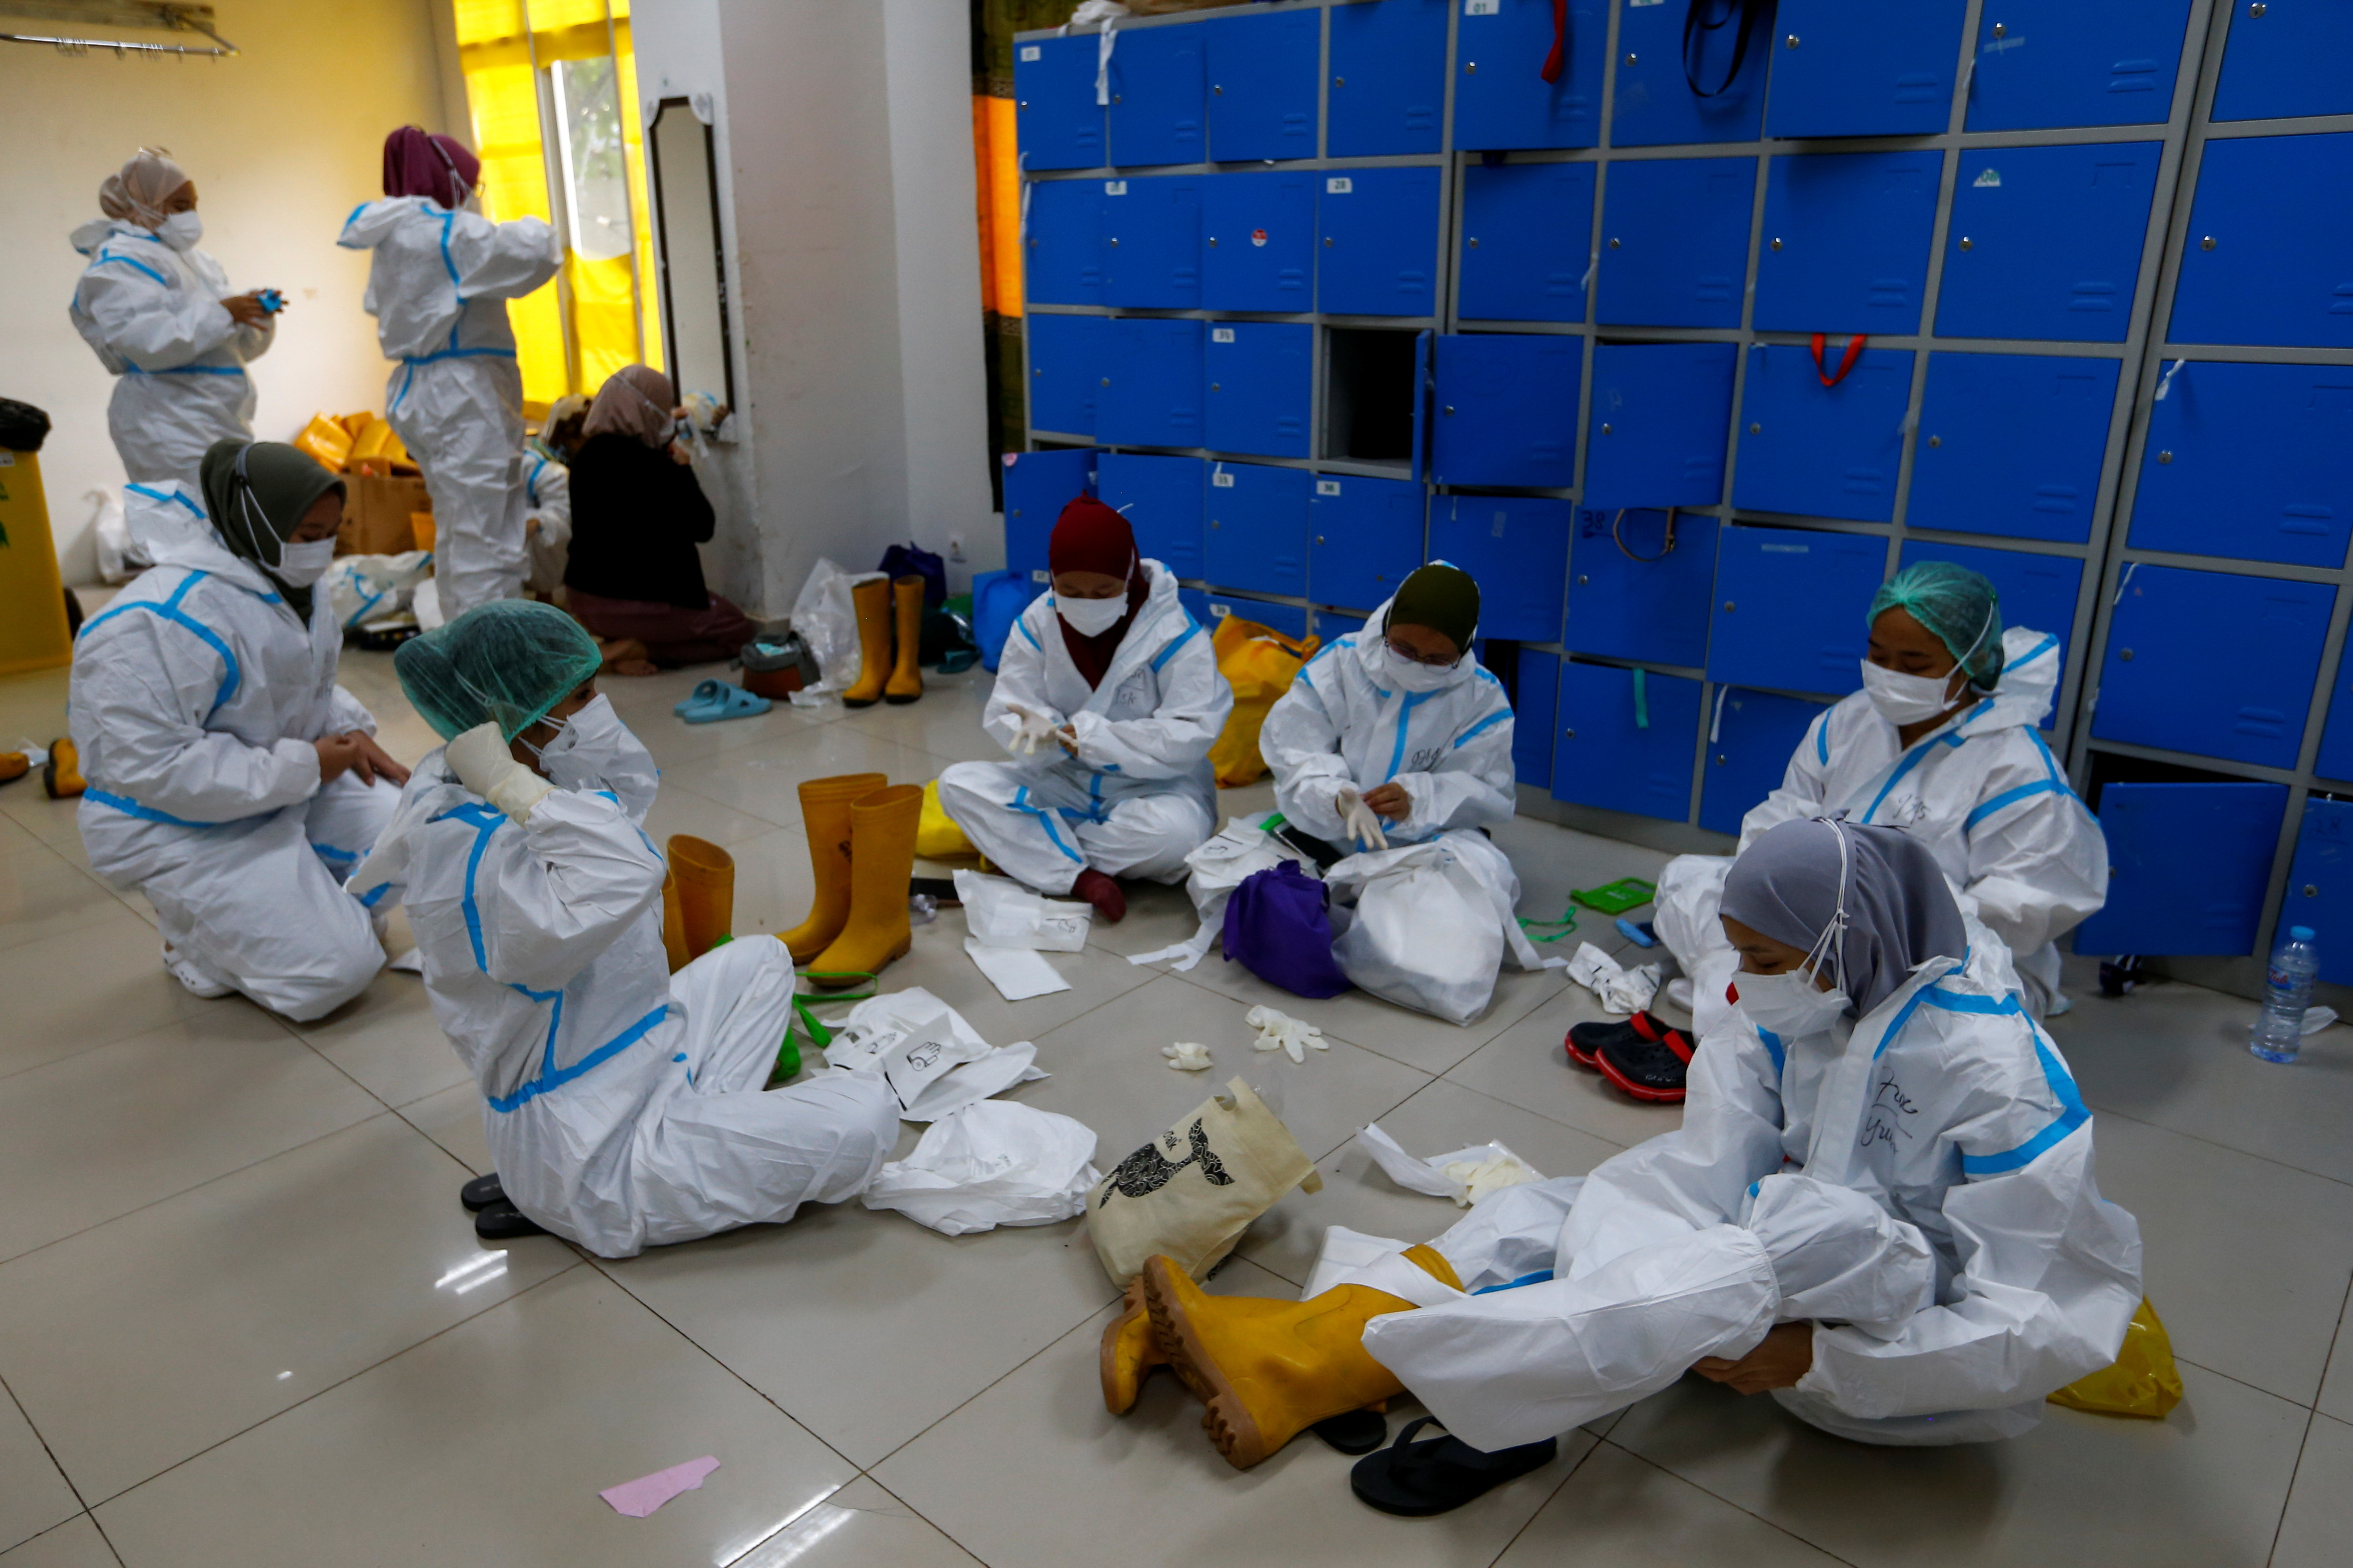 Healthcare workers put on personal protective equipment (PPE) as they prepare to treat patients at the emergency hospital for the coronavirus disease (COVID-19) in Jakarta, Indonesia, June 17, 2021. REUTERS/Ajeng Dinar Ulfiana